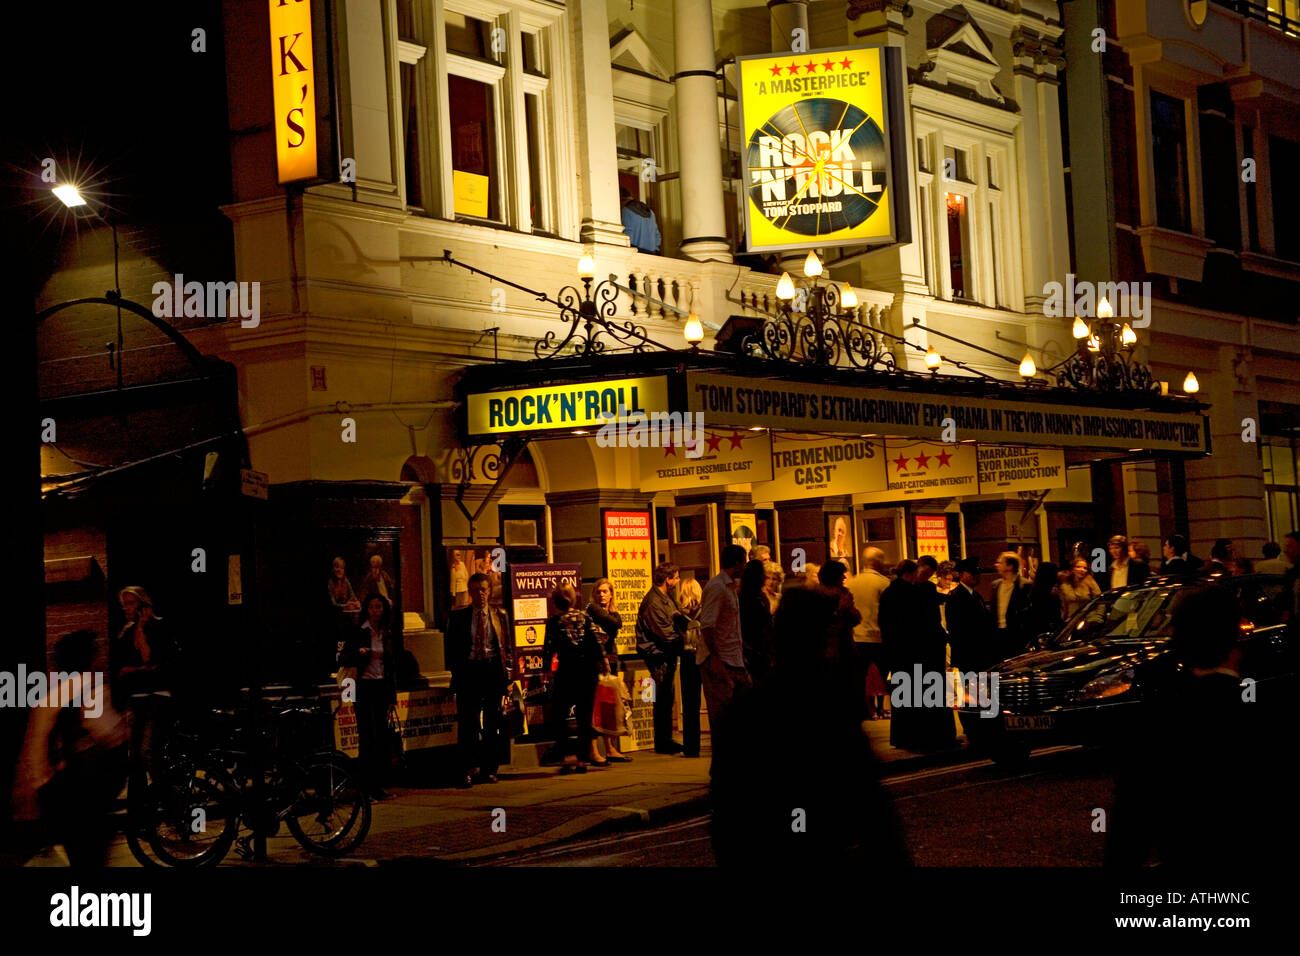 Rock n Roll at the Duke of York's Theatre in London England - Stock Image